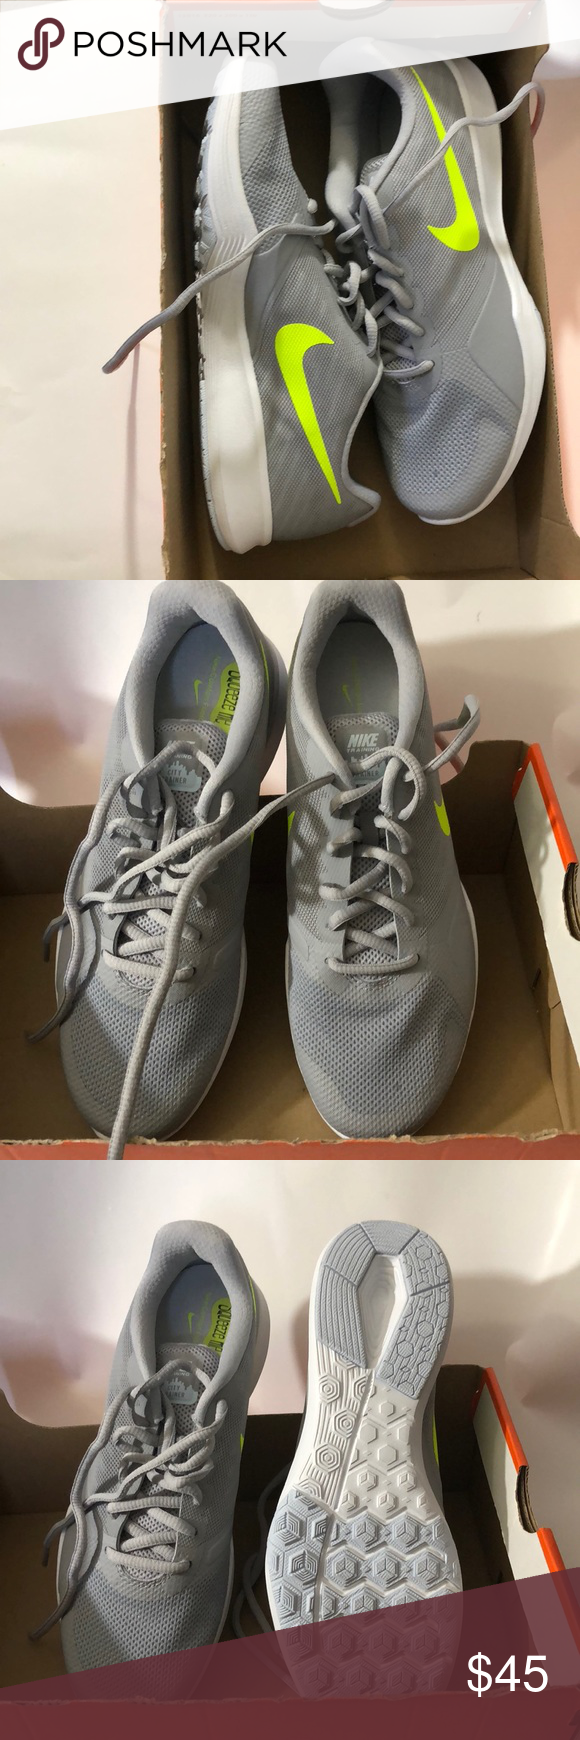 d77ef72019b1a4 Nike women s city trainer size 9 1 2 gray Women s gray Nike city trainers  size 9 1 2 swishy neon yellow Nike Shoes Sneakers